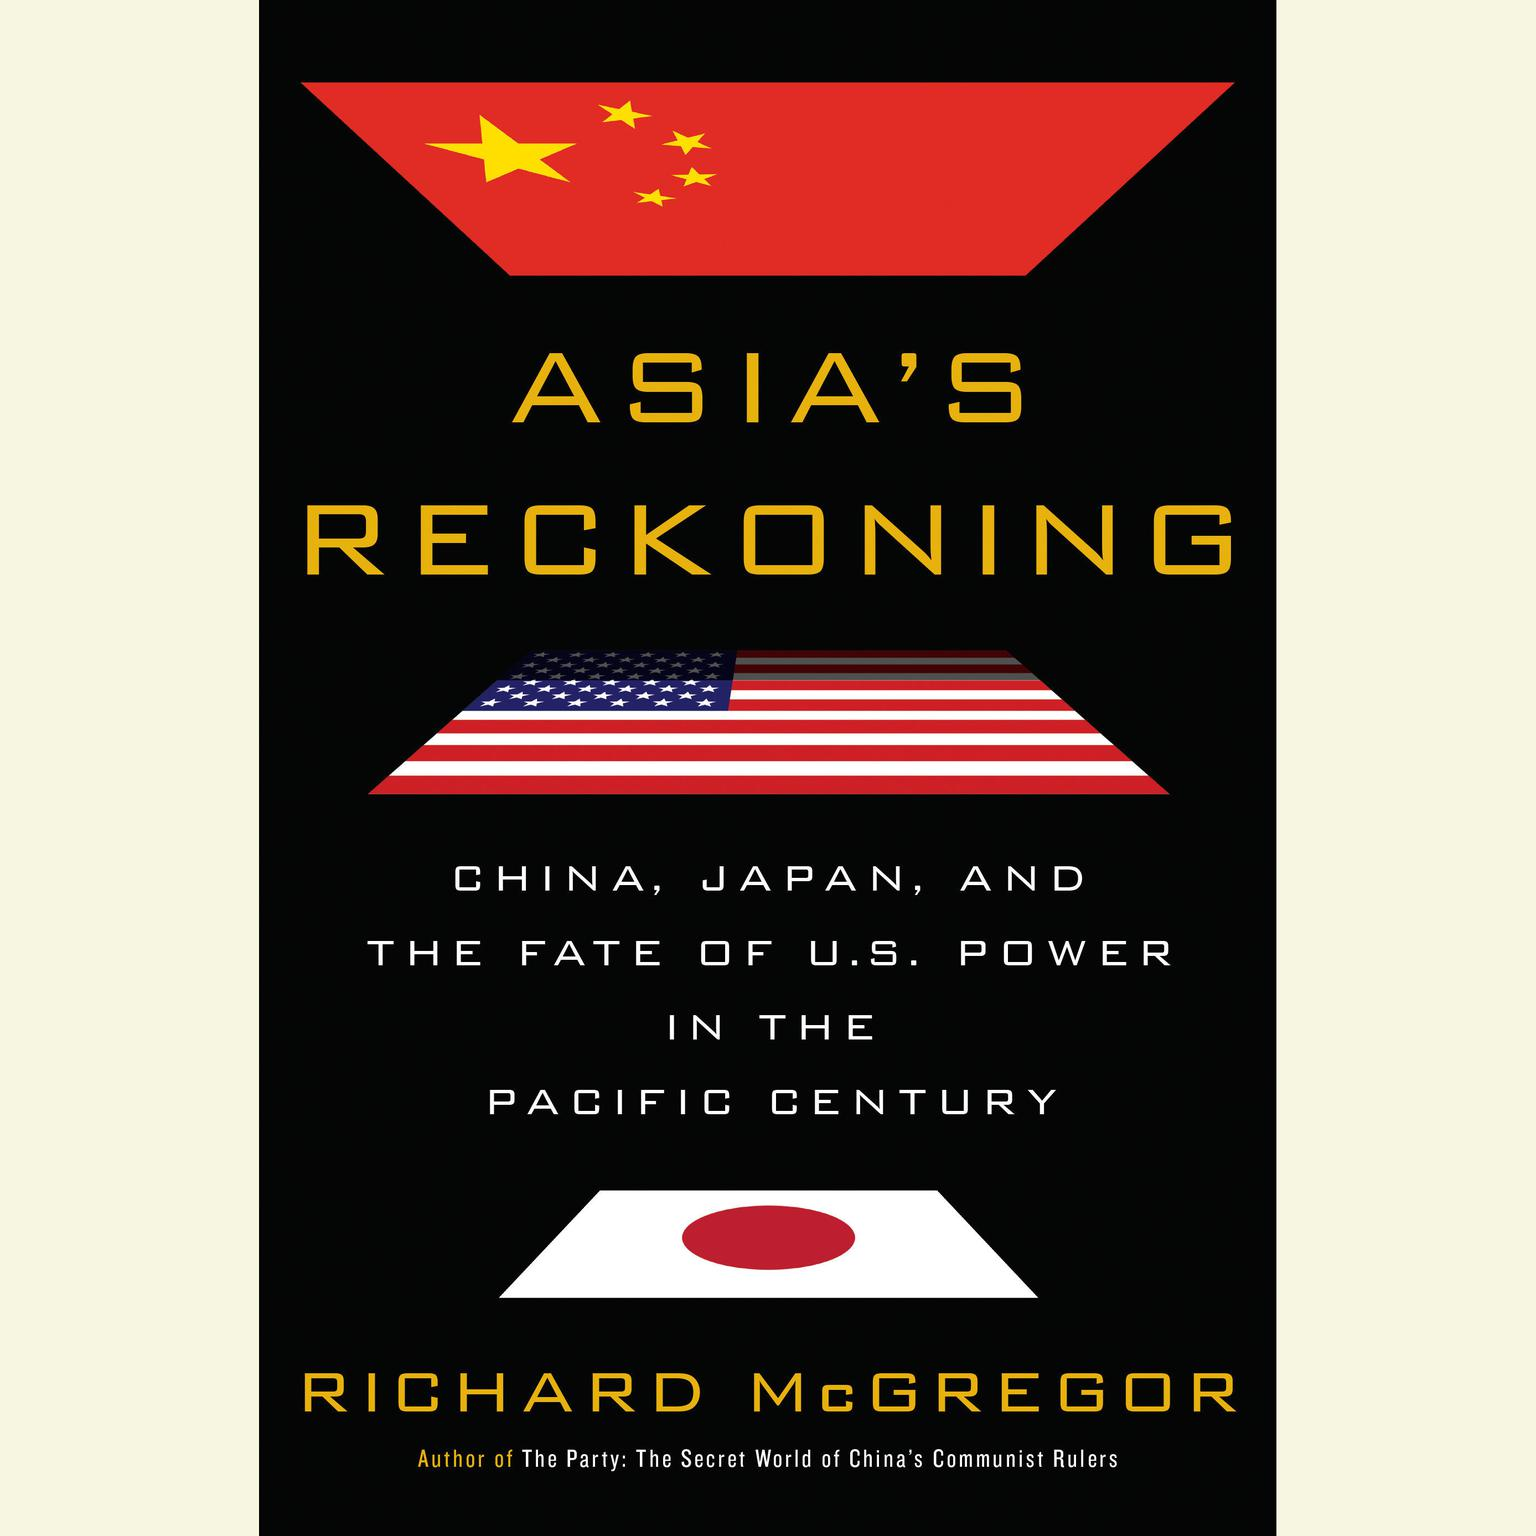 Printable Asia's Reckoning: China, Japan, and the Fate of U.S. Power in the Pacific Century Audiobook Cover Art